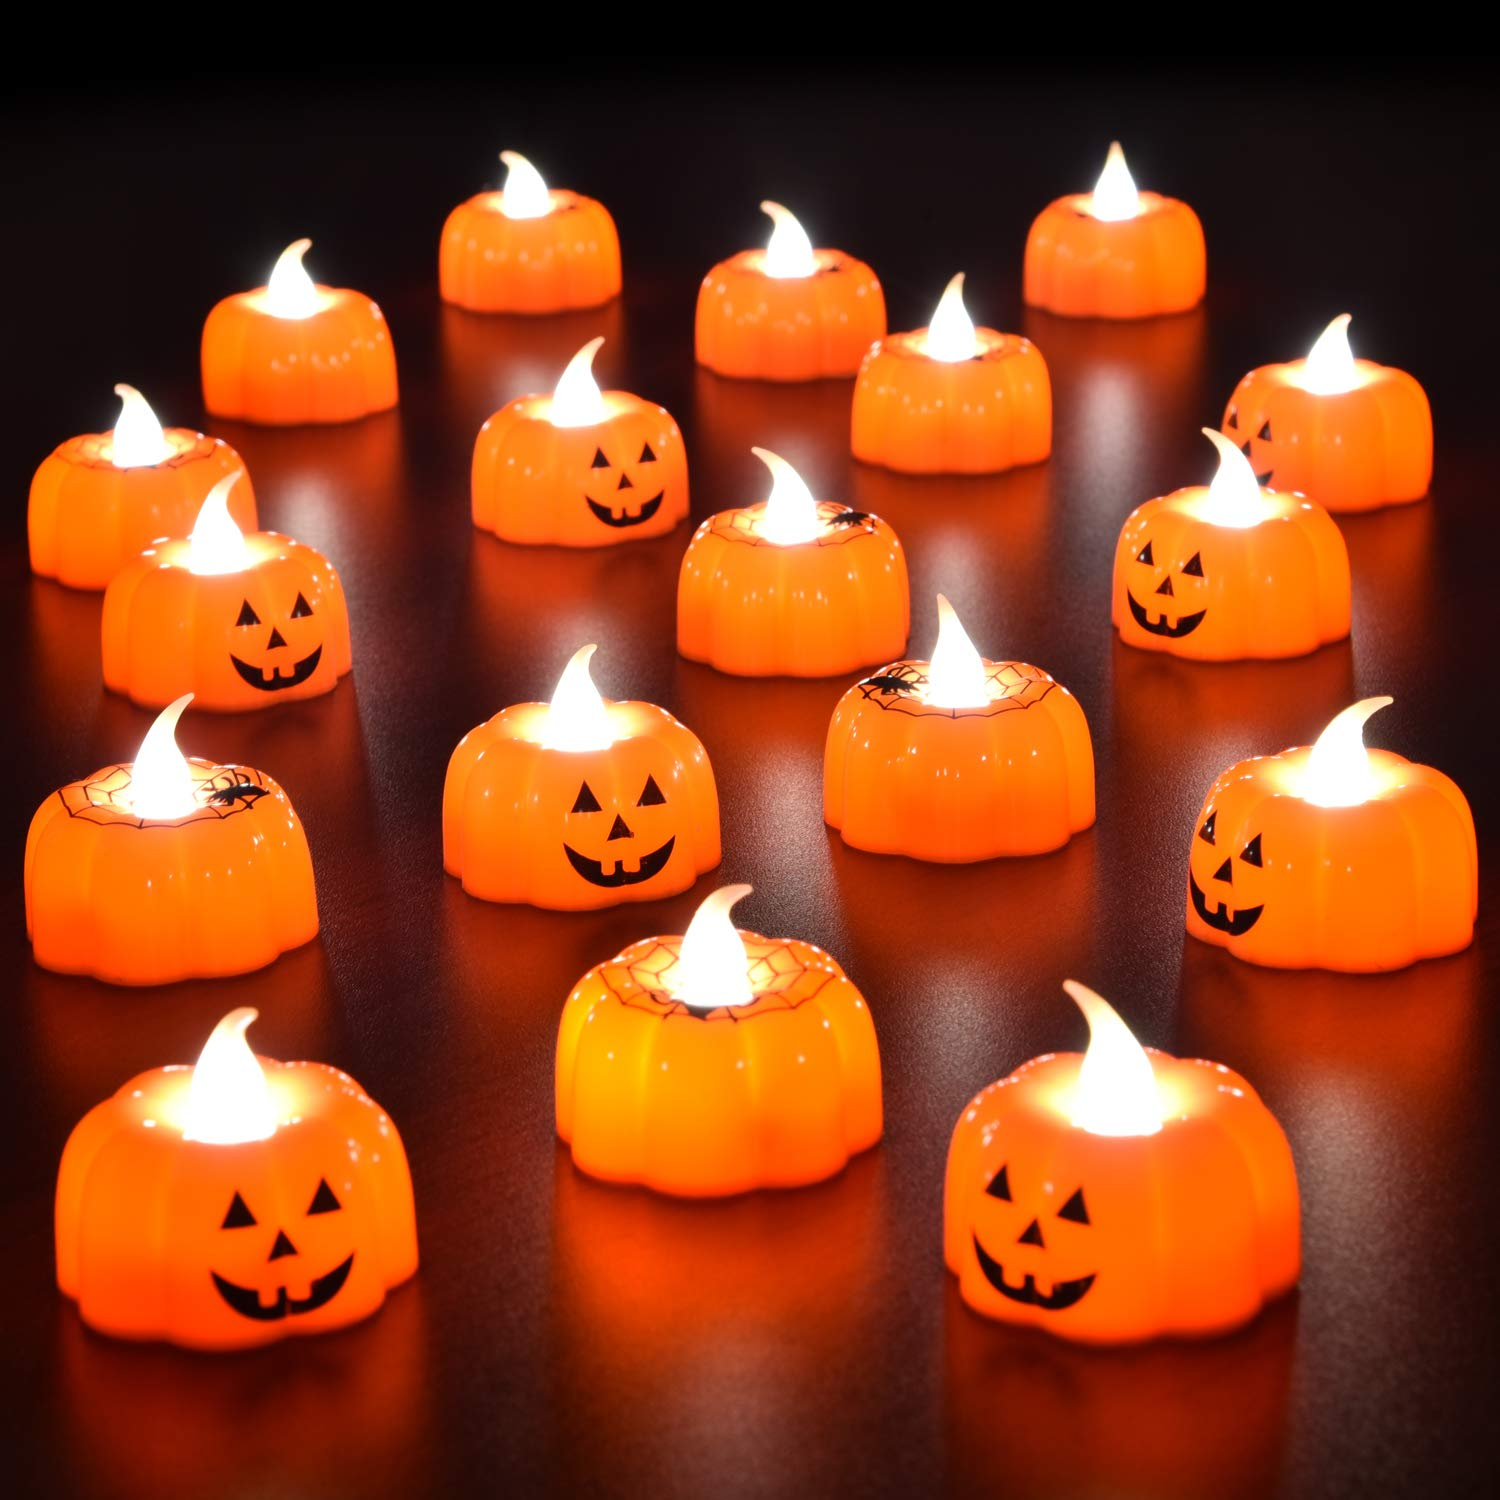 18PCs Halloween party favors 3D Pumpkin Flameless Candle Battery Operated LED Candle for Halloween Decorations,Themed Party Supplies,1.9''x1.7'', Warm White Flickering by FUN LITTLE TOYS